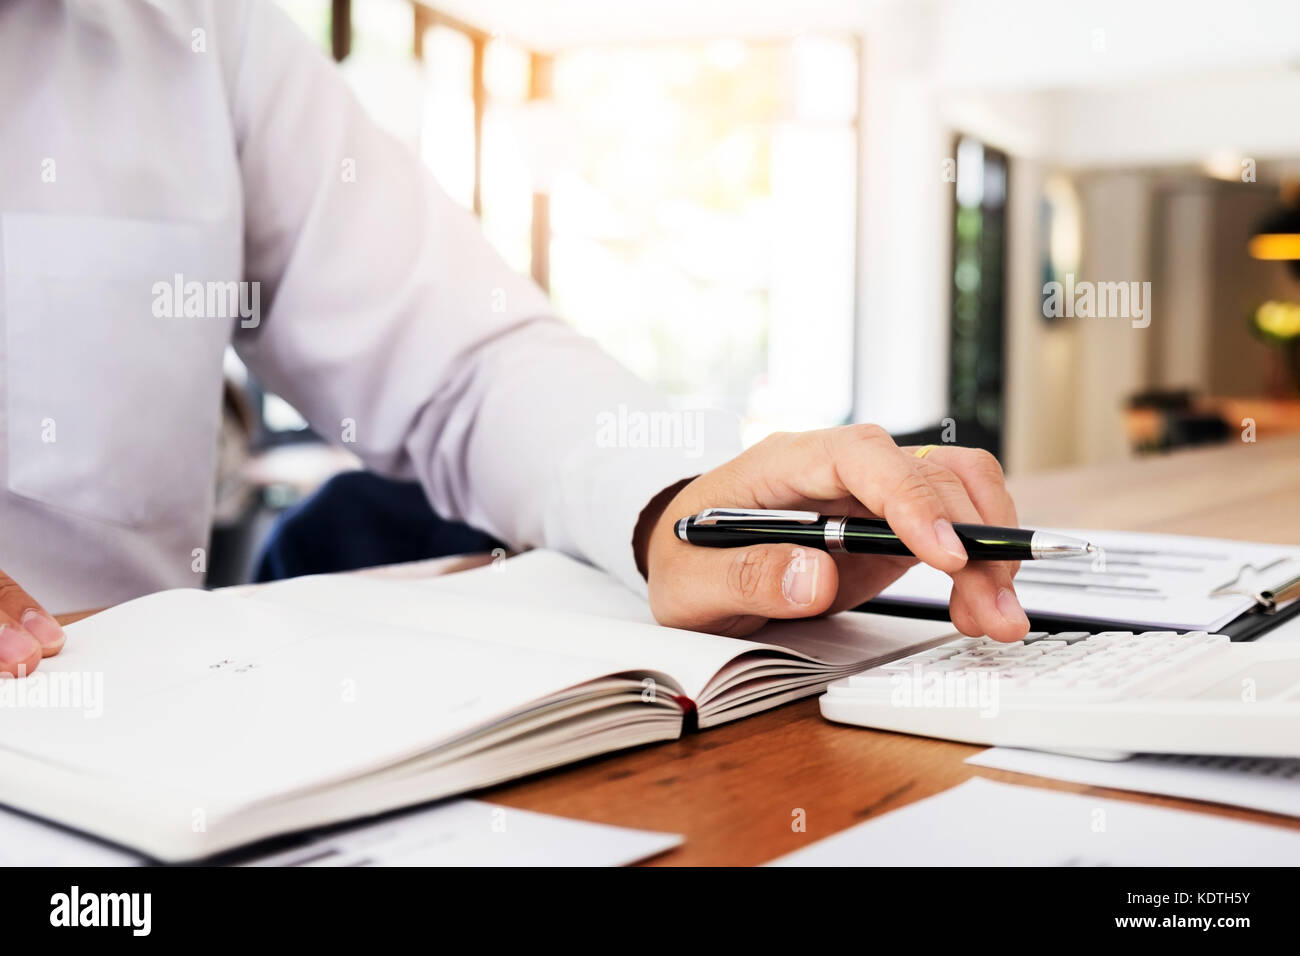 Accountant or banker calculating balance. finances investment economy saving money or insurance concept - Stock Image